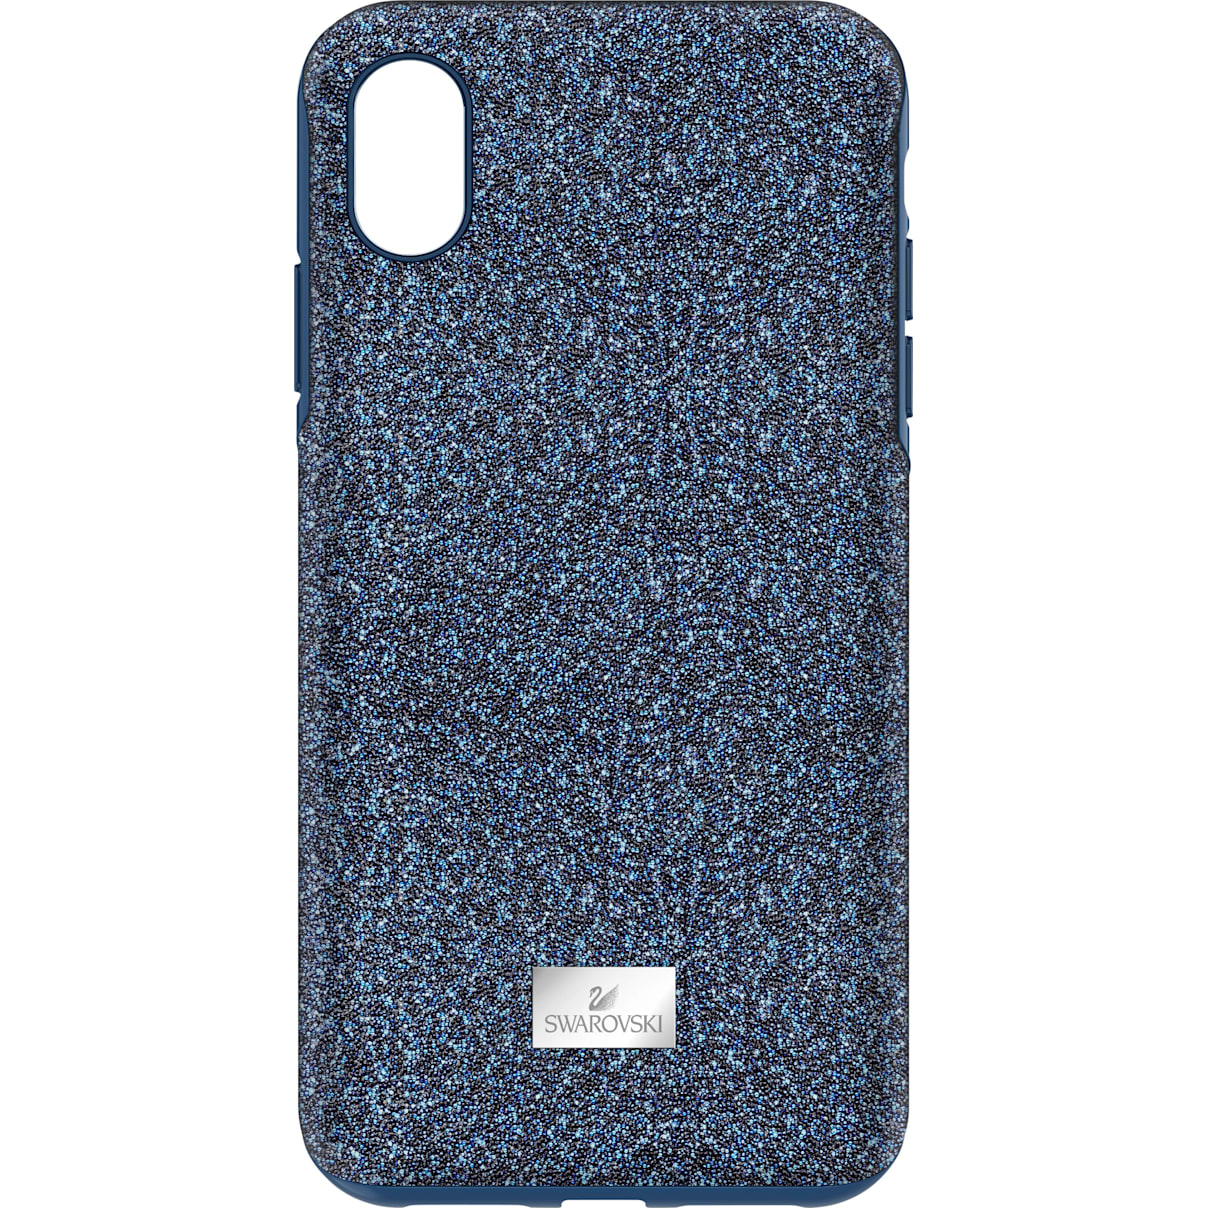 Swarovski High Smartphone Case with Bumper, iPhone® XR, Blue